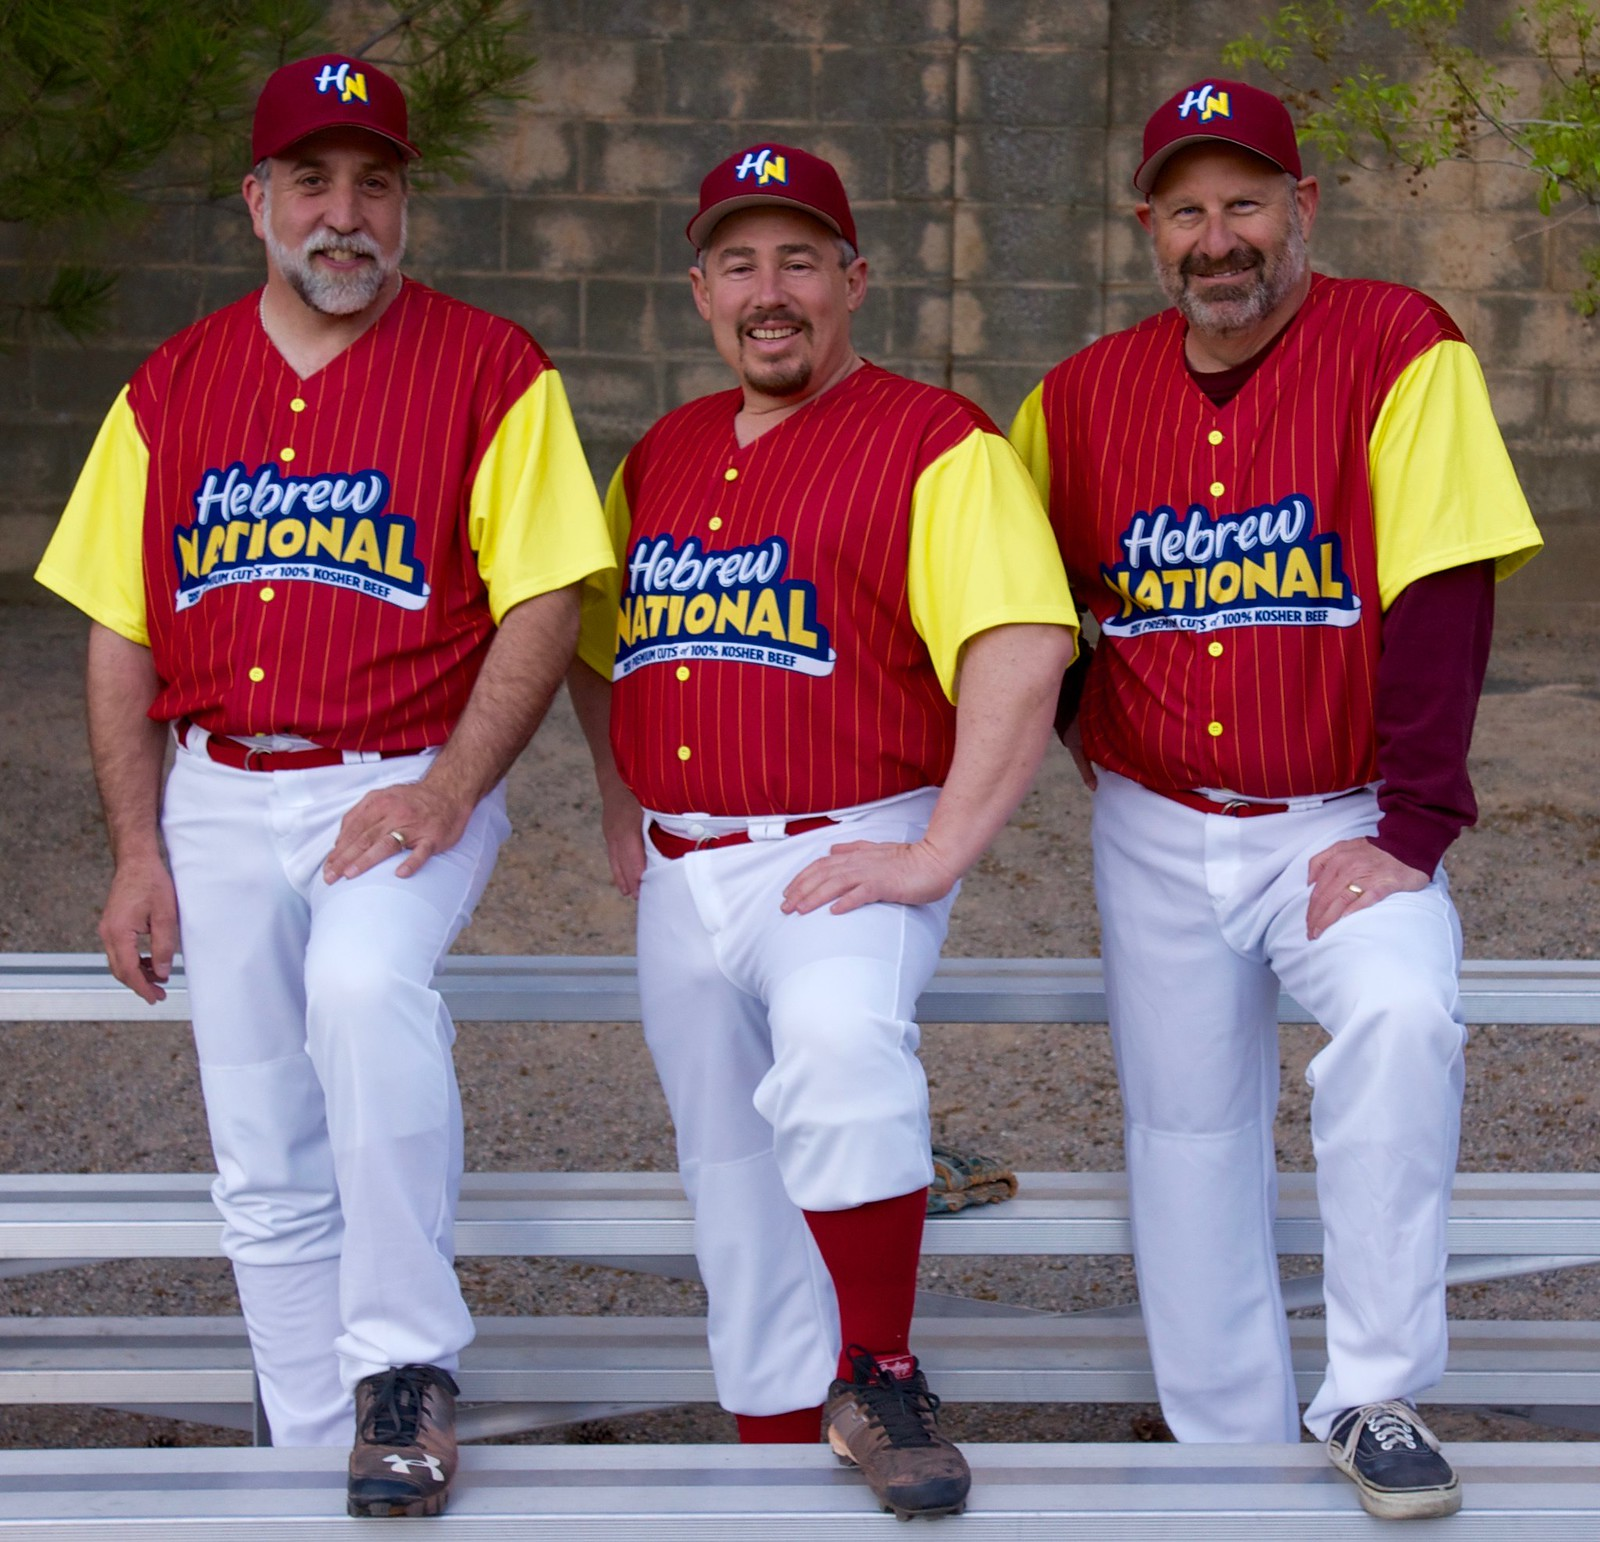 239f4ccc825 Hot Dog! Jewish Softball Team Becomes Hebrew Nationals